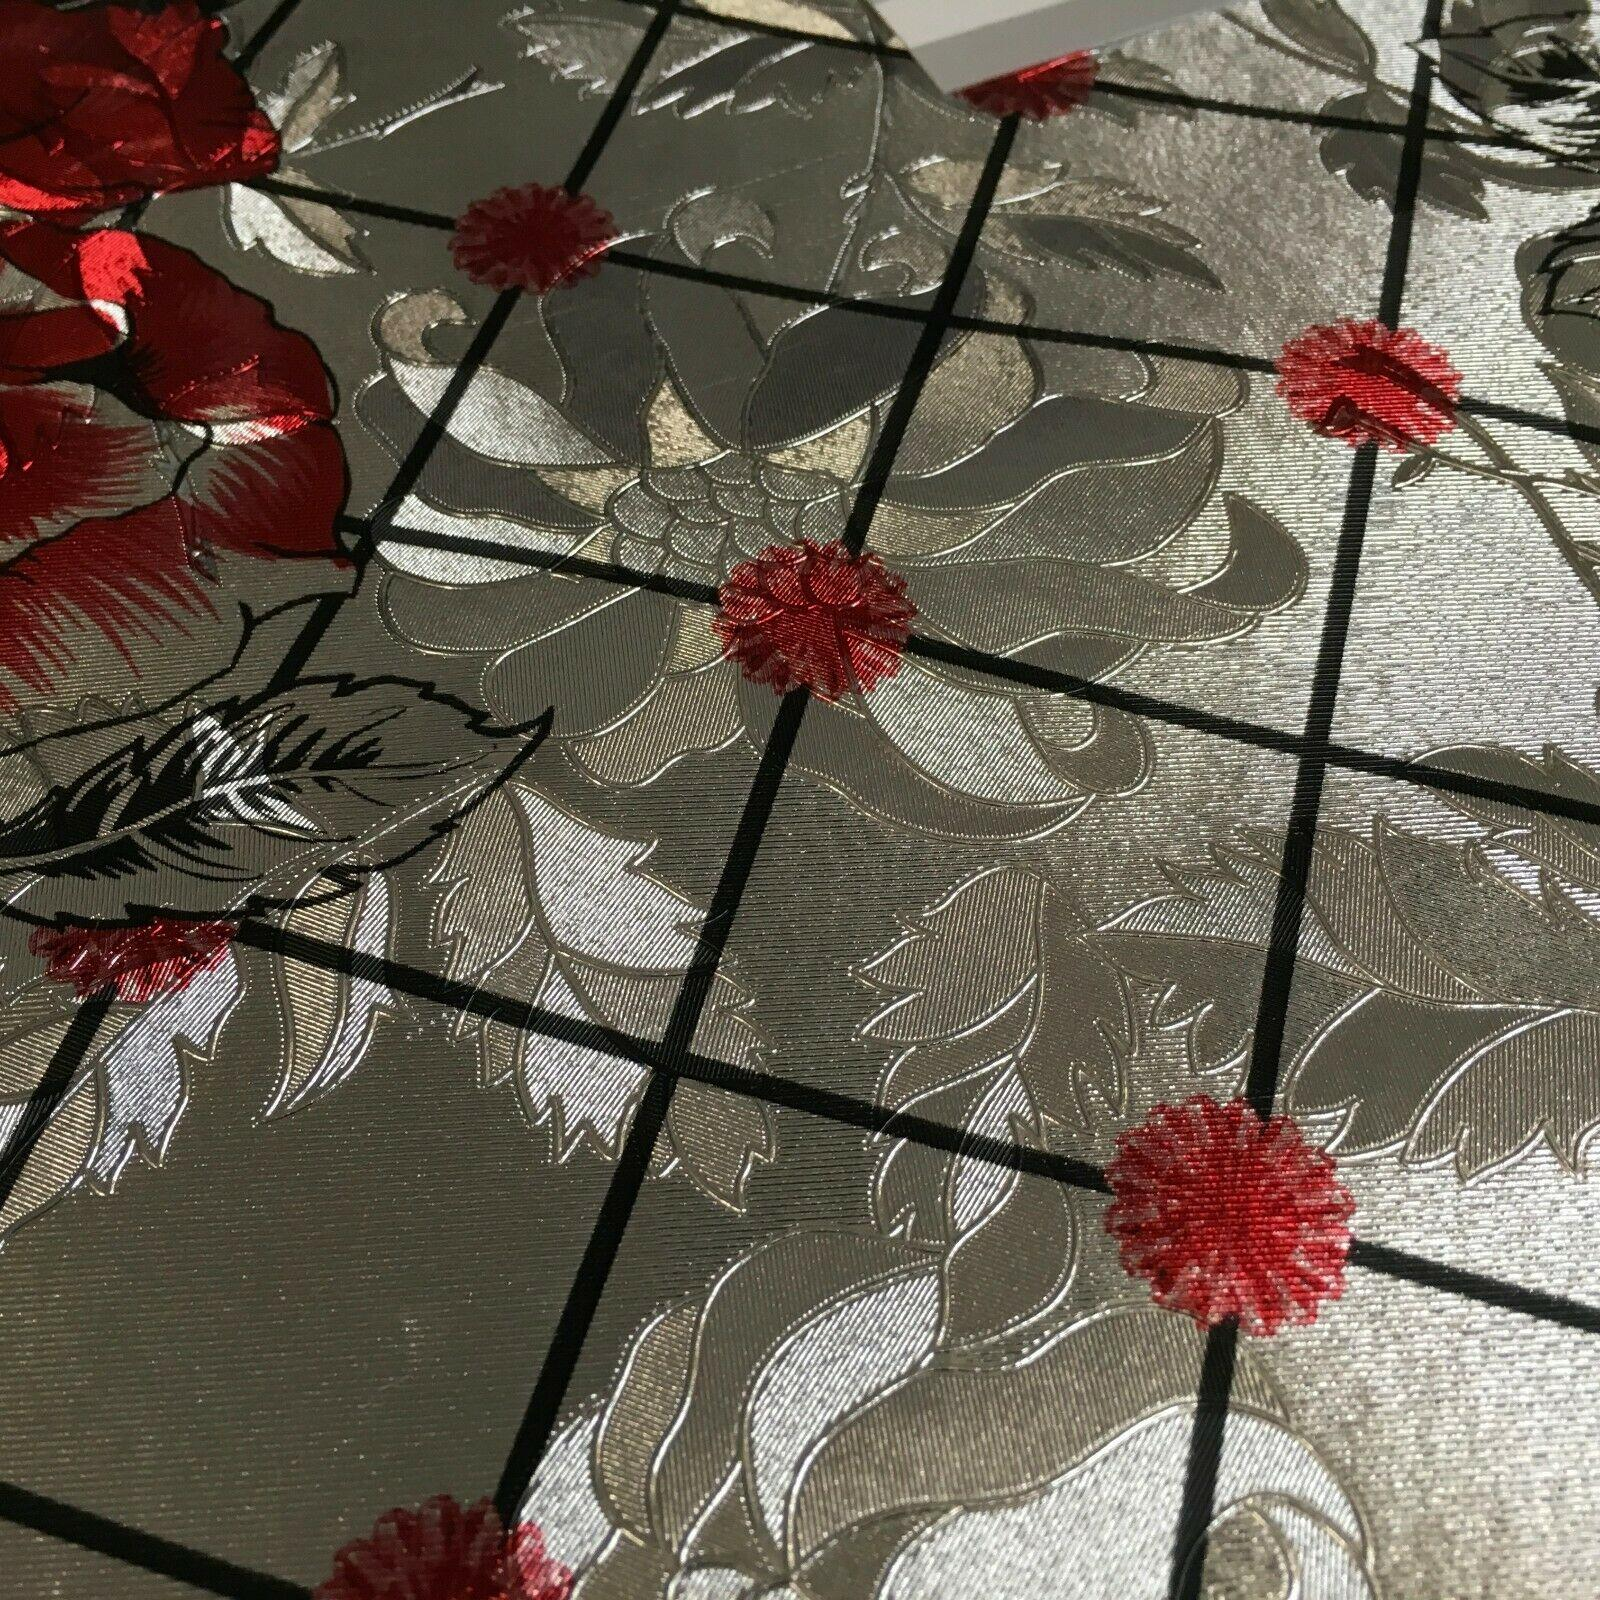 Metallic Silver Floral border Wipe clean table cover Fabric 139 cm M1204 Mtex